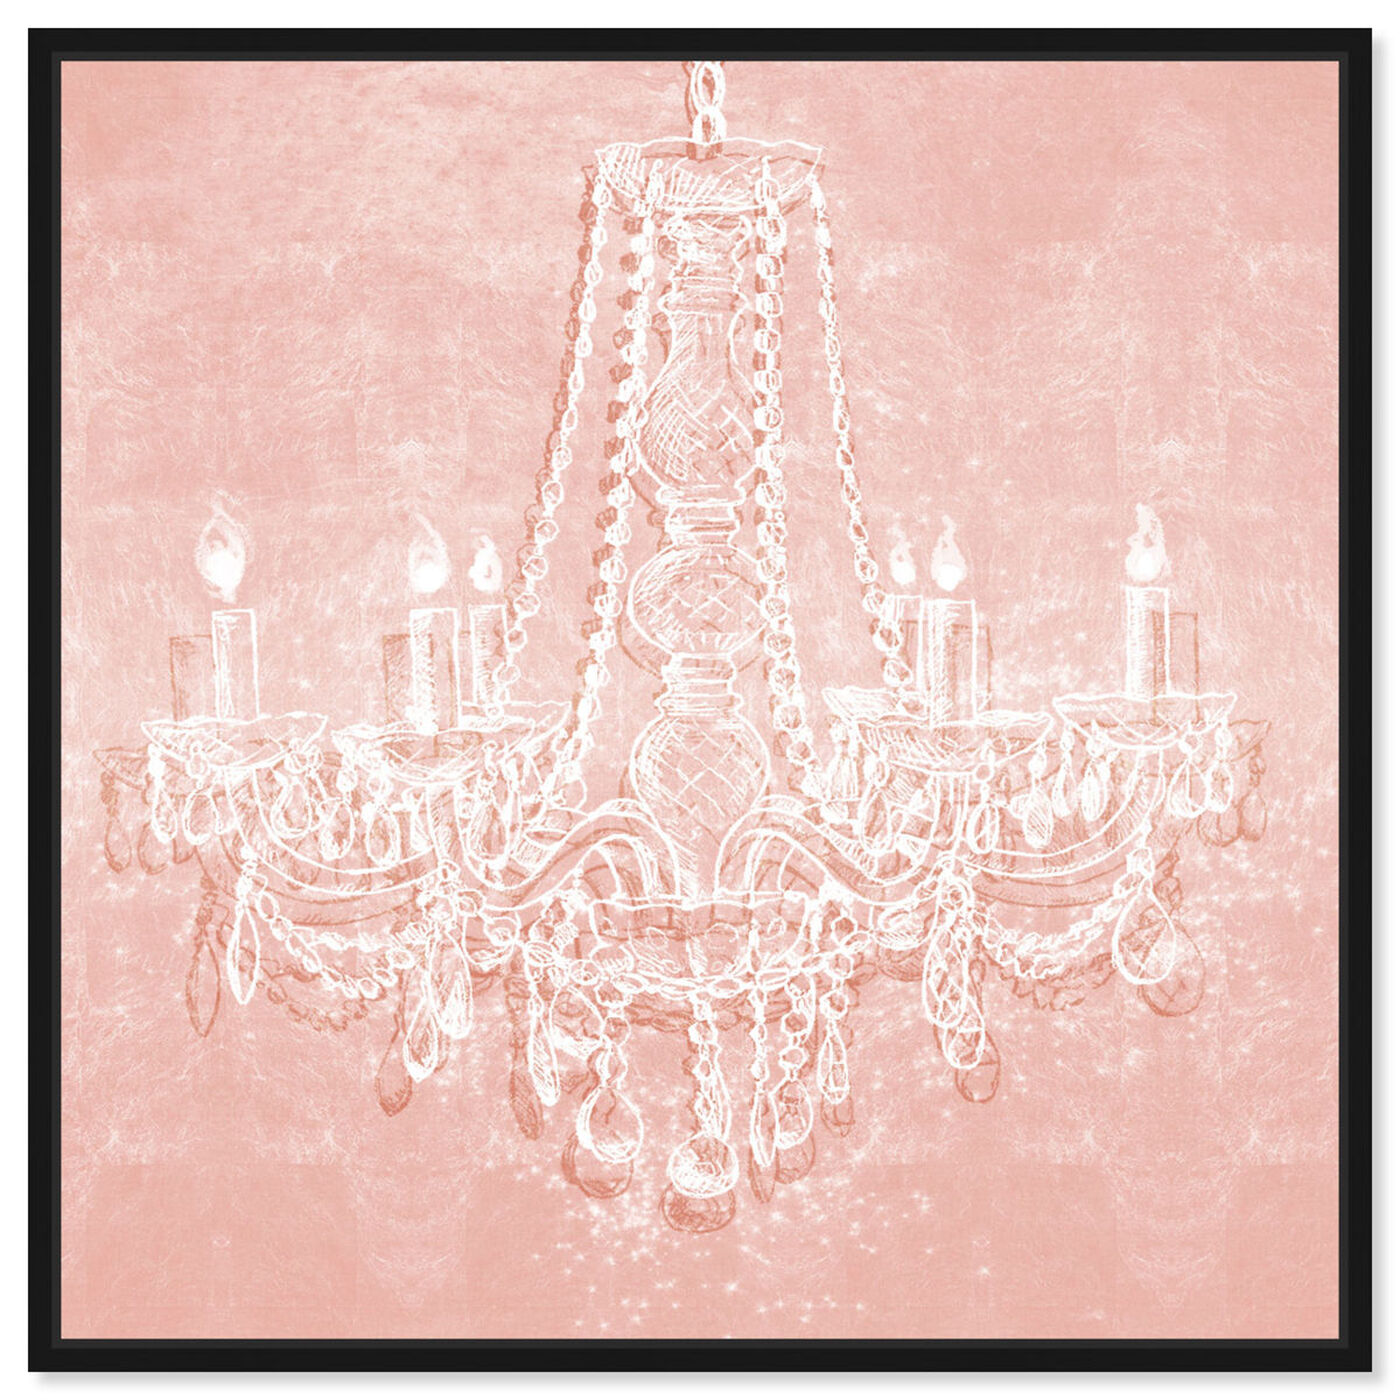 Front view of Light in the Rose featuring fashion and glam and chandeliers art.